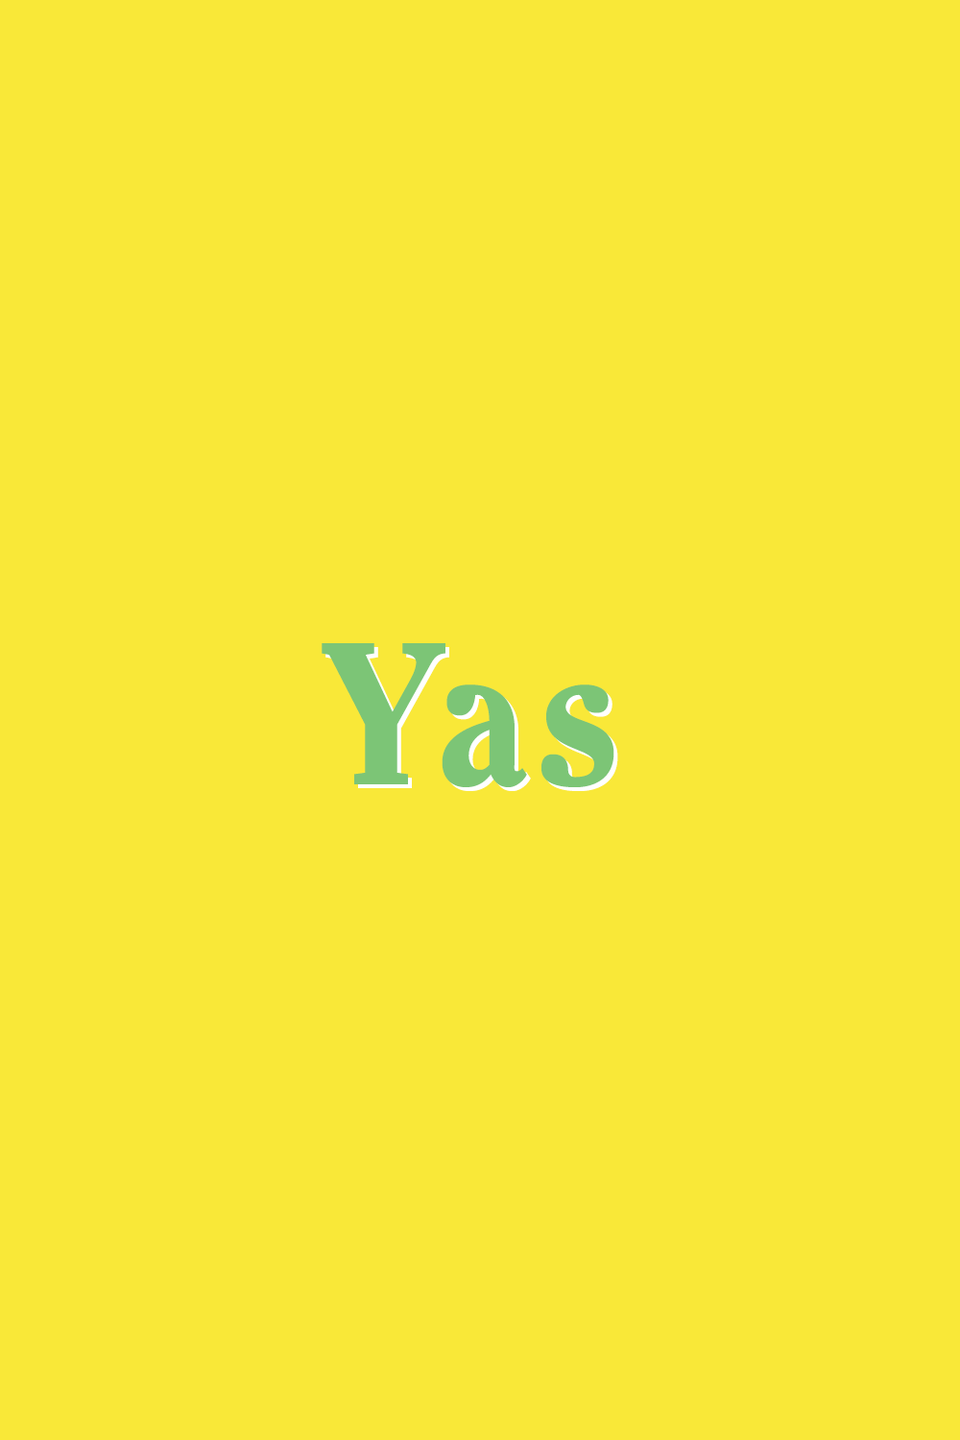 "<p>To express praise for something or someone, a simple ""yas,"" will do. Often, people mistakenly think ""yass"" comes from <a href=""https://www.amazon.com/Broad-City-Season-4/dp/B074WJDV94?tag=syn-yahoo-20&ascsubtag=%5Bartid%7C10063.g.36061267%5Bsrc%7Cyahoo-us"" rel=""nofollow noopener"" target=""_blank"" data-ylk=""slk:Broad City"" class=""link rapid-noclick-resp""><em>Broad City</em></a>, in which Ilana Glazer's character regularly uses ""yass queen,"" or <a href=""https://www.youtube.com/watch?v=5Pn0JKmy5-M"" rel=""nofollow noopener"" target=""_blank"" data-ylk=""slk:this viral 2013 video"" class=""link rapid-noclick-resp"">this viral 2013 video</a> in which a Lady Gaga fan repeatedly says, ""yass Gaga, you look so good."" But it generally derives from <a href=""https://www.oprahdaily.com/life/a23601818/queer-cultural-appropriation-definition/"" rel=""nofollow noopener"" target=""_blank"" data-ylk=""slk:ball culture"" class=""link rapid-noclick-resp"">ball culture</a>.</p>"